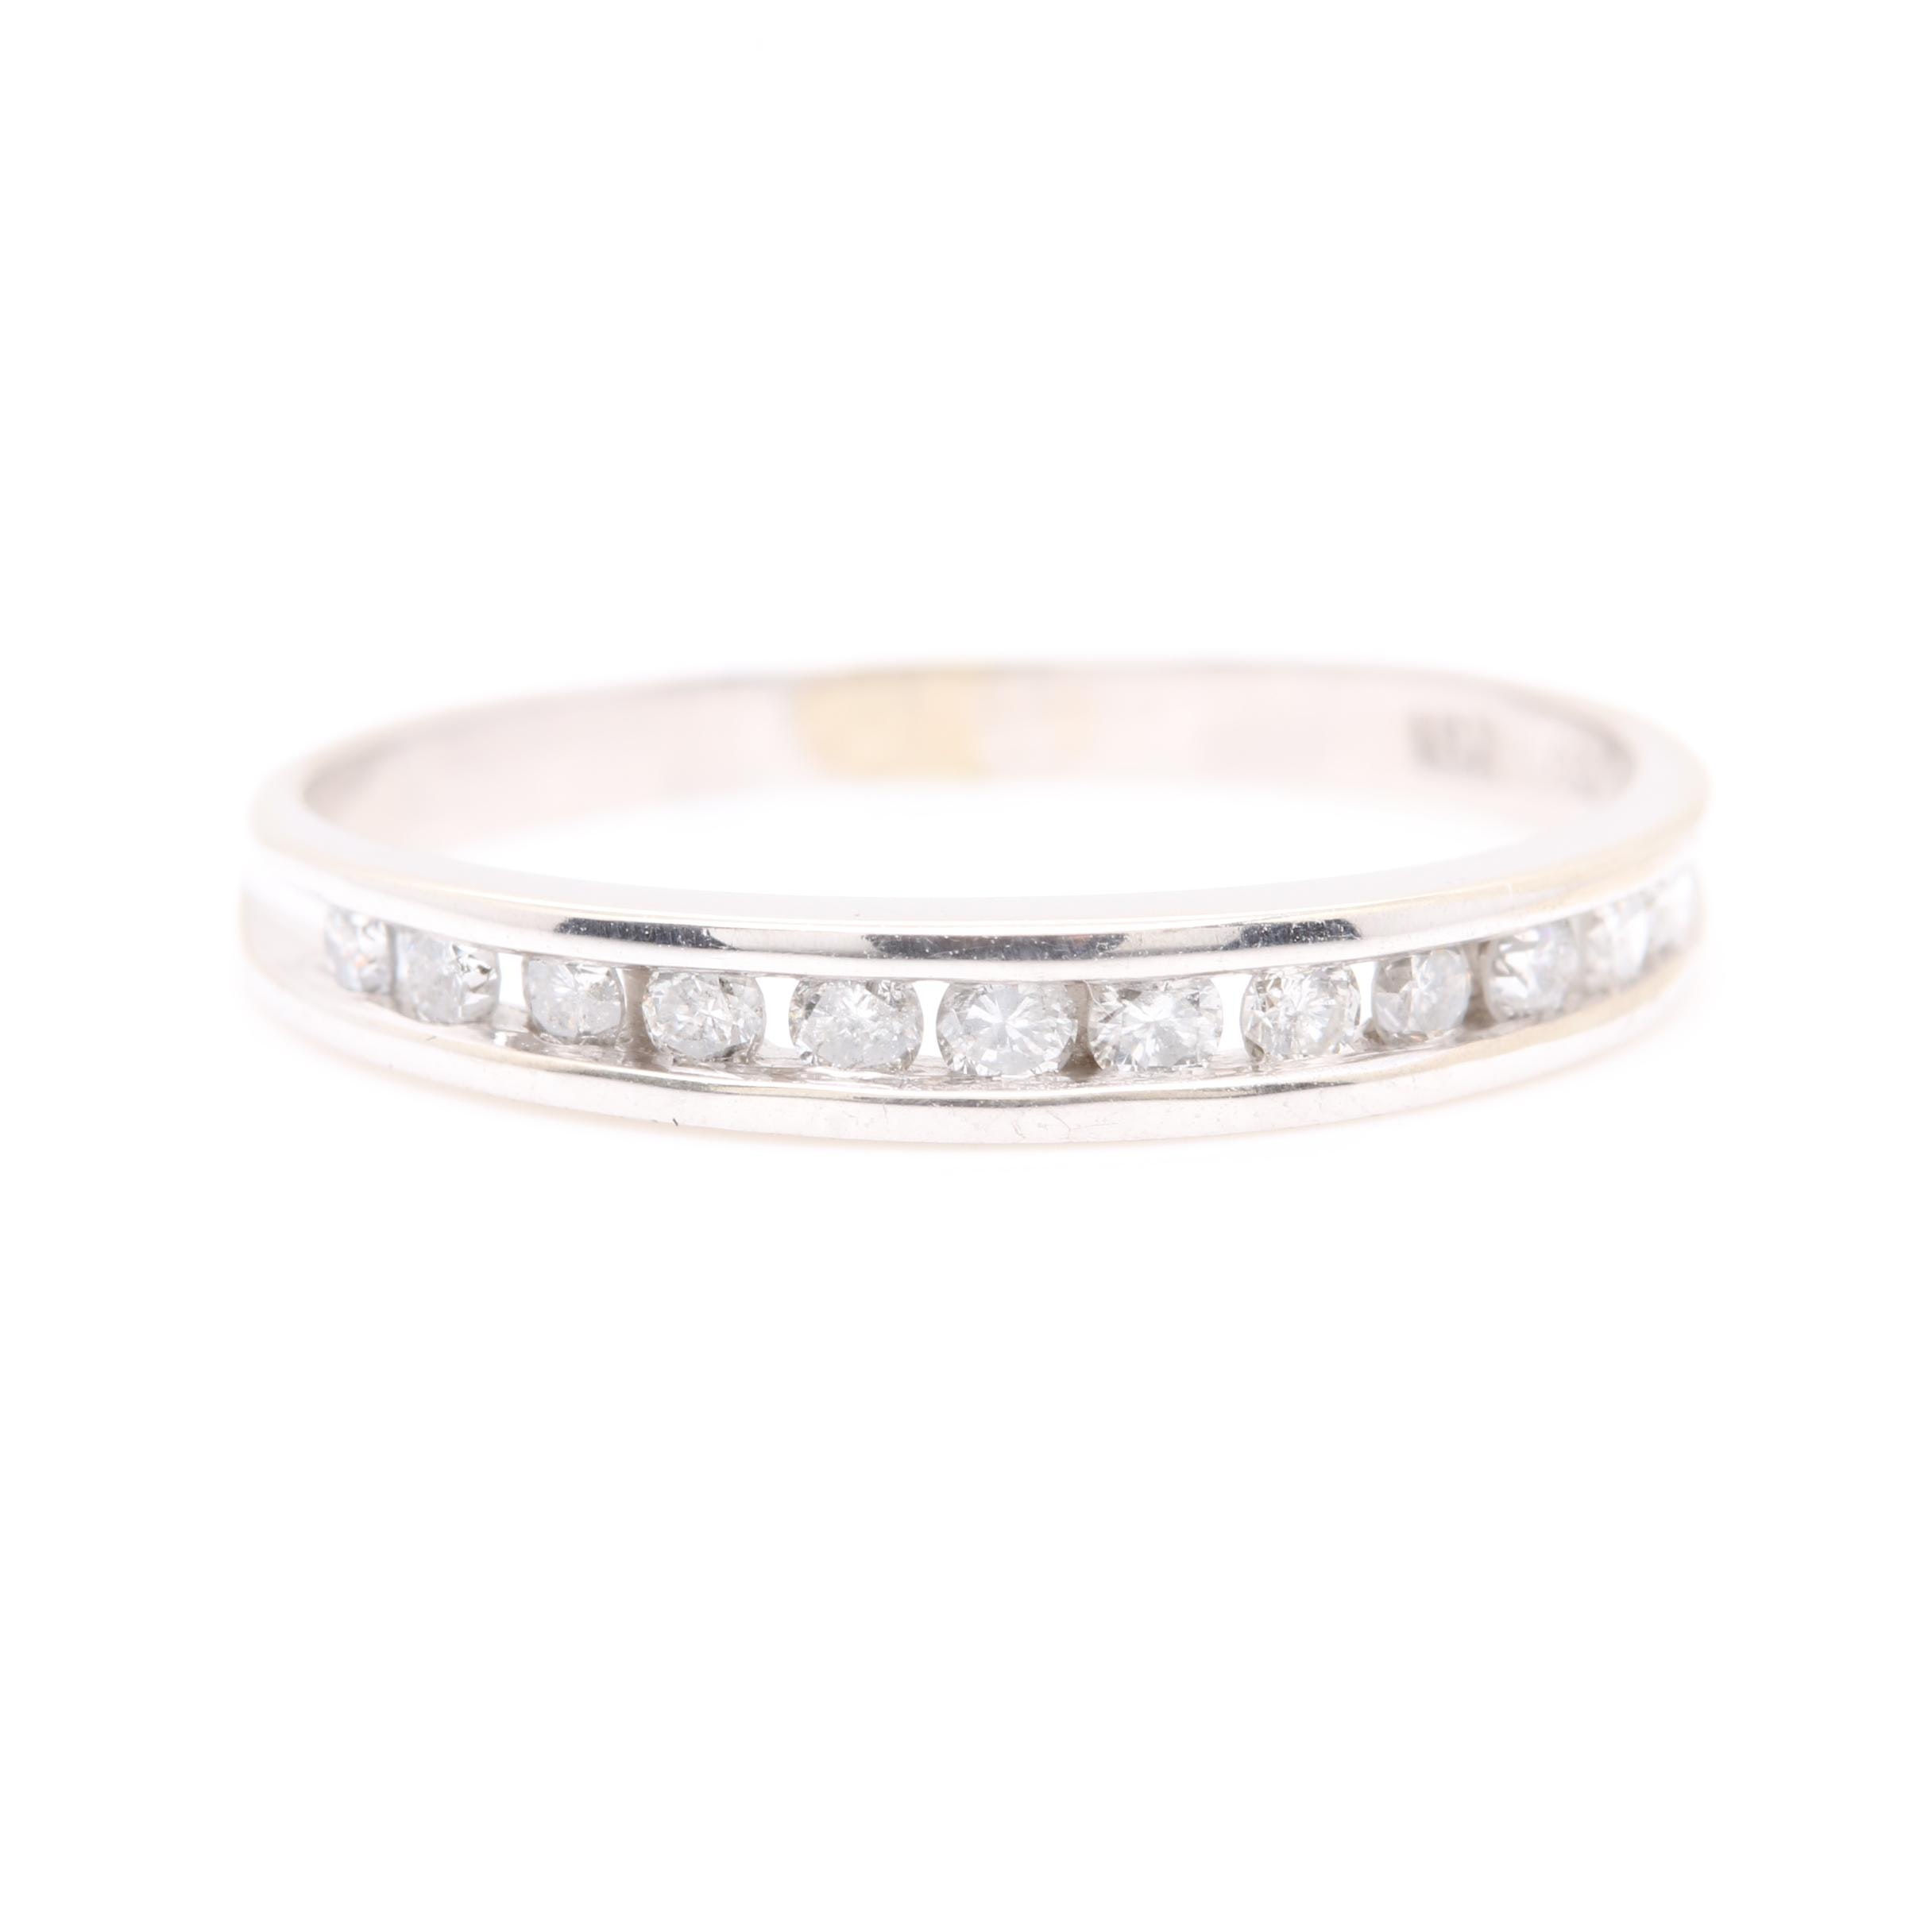 10K White Gold Diamond Channel Ring Band